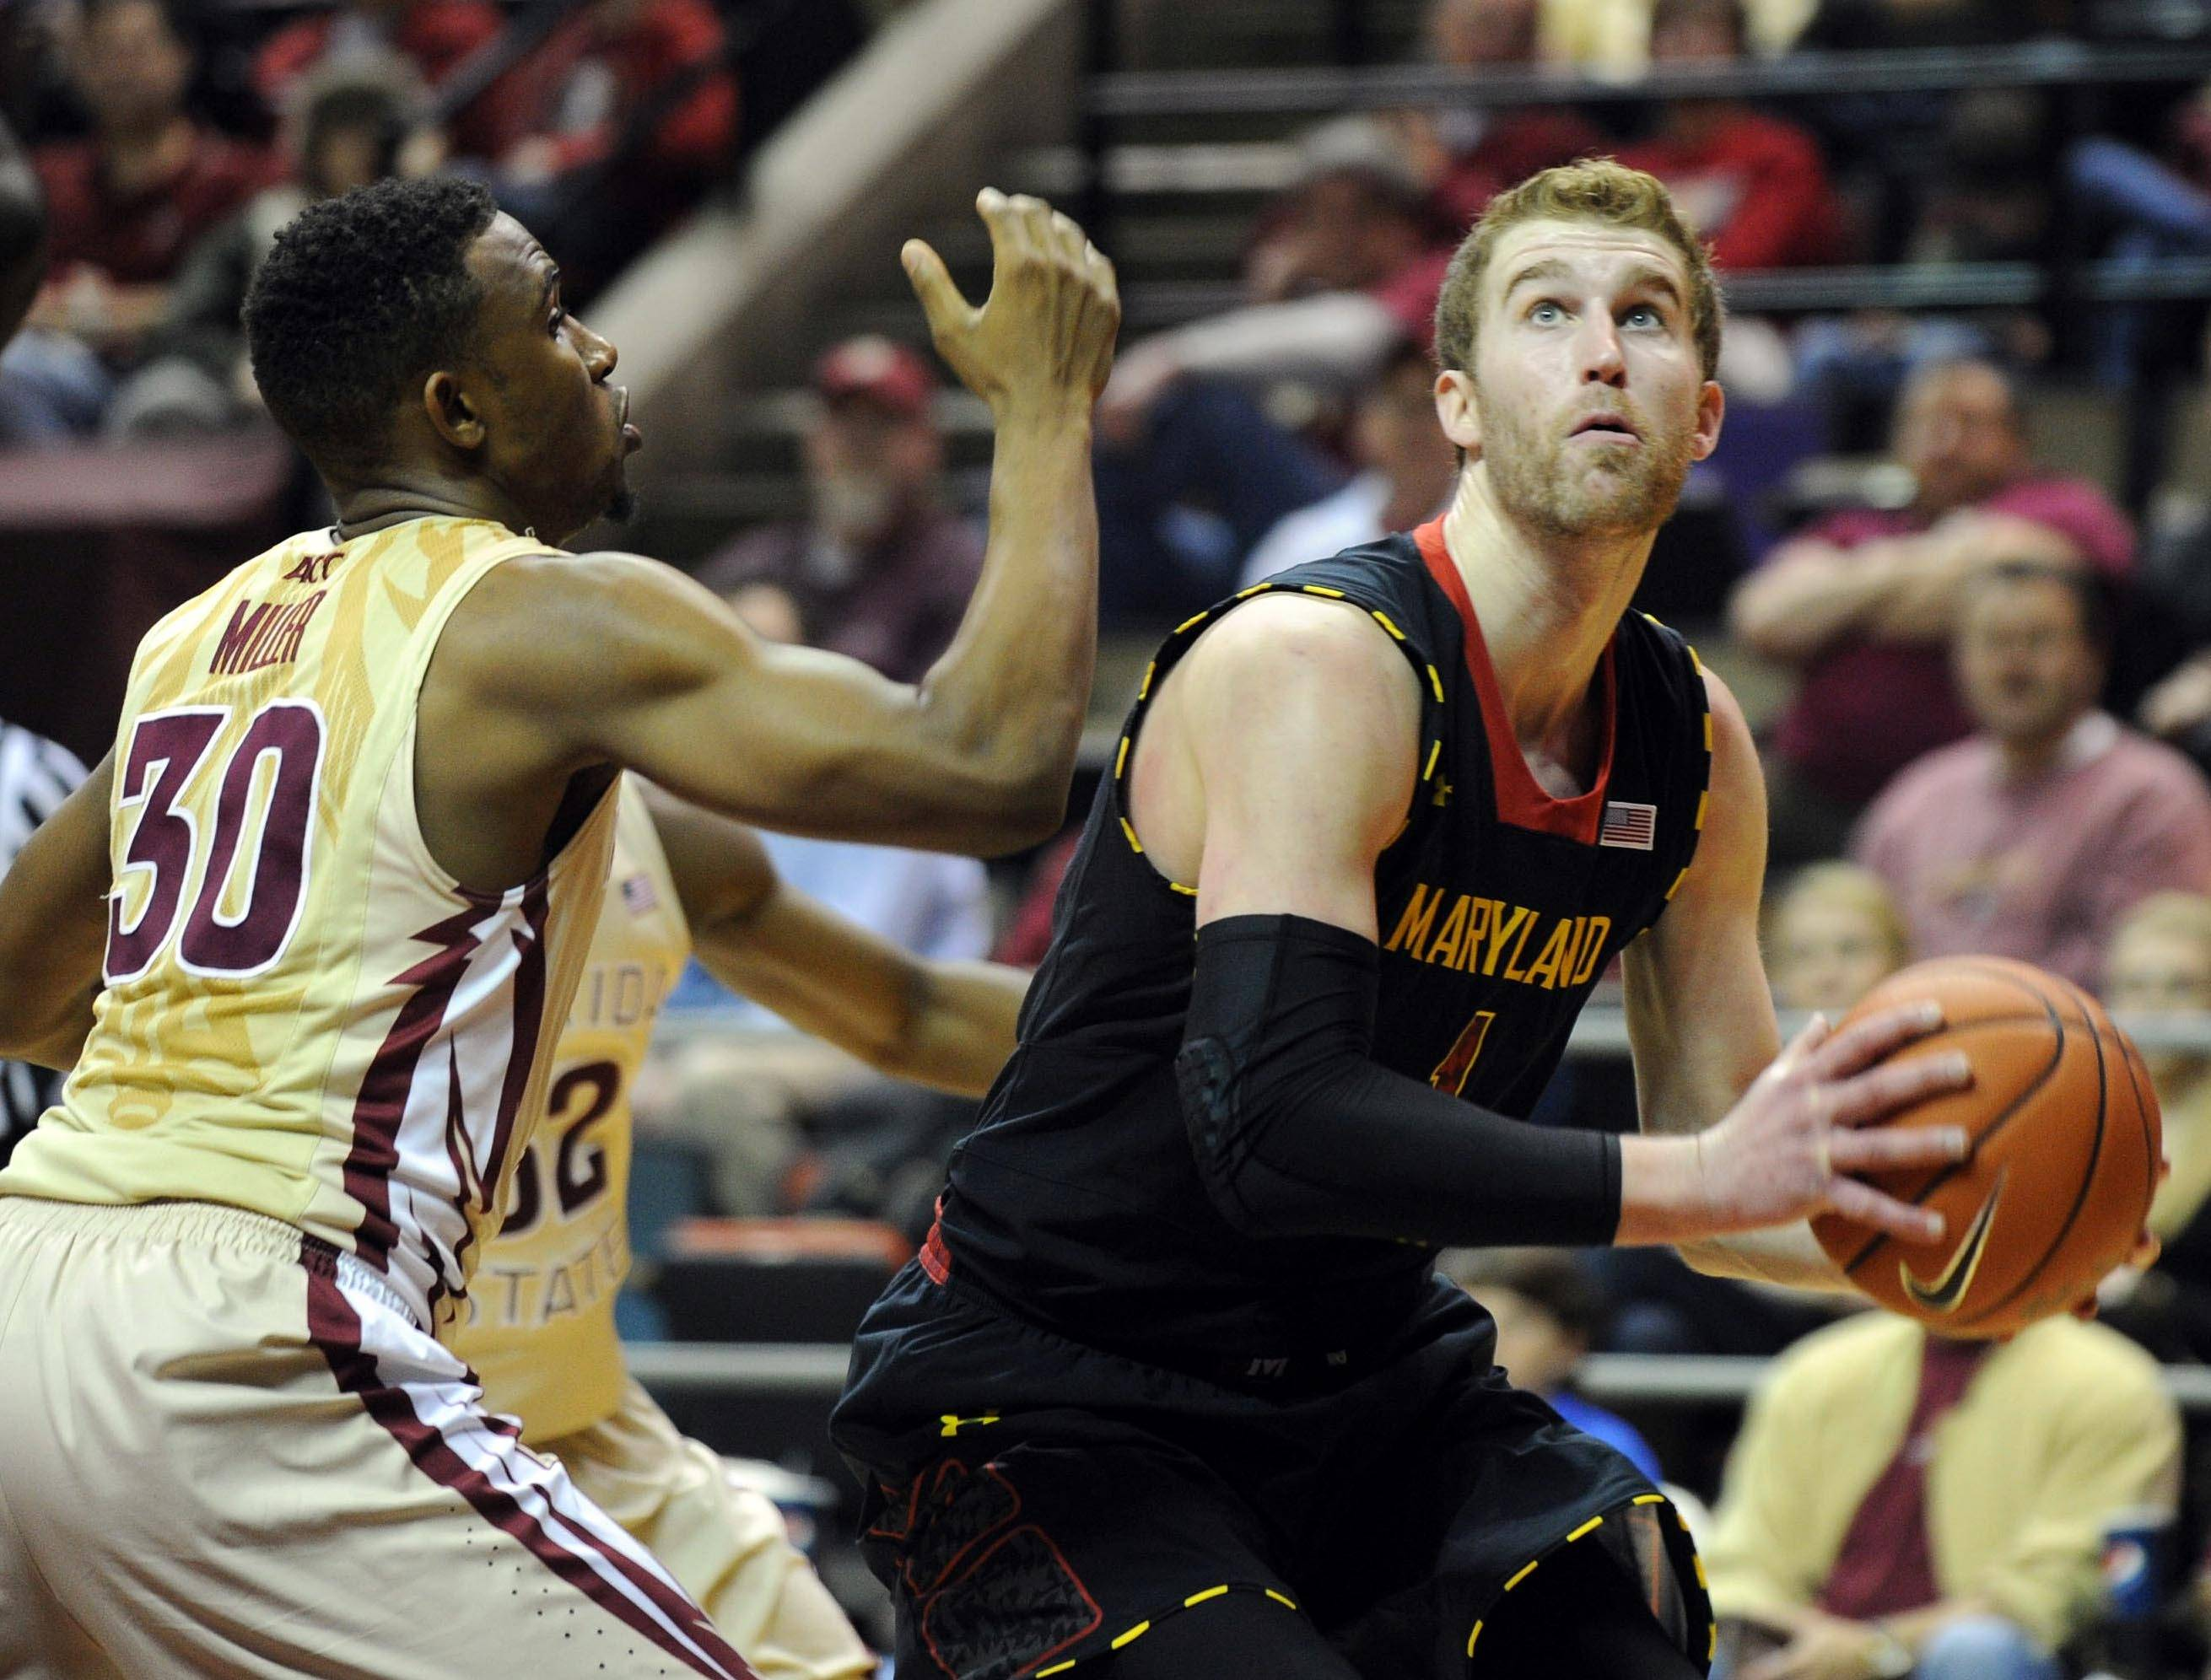 Jan 12, 2014; Tallahassee, FL, USA; Florida State Seminoles guard Ian Miller (30) defends Maryland Terrapins forward Evan Smotrycz (1) during the second half at Donald L. Tucker Center. Mandatory Credit: Melina Vastola-USA TODAY Sports